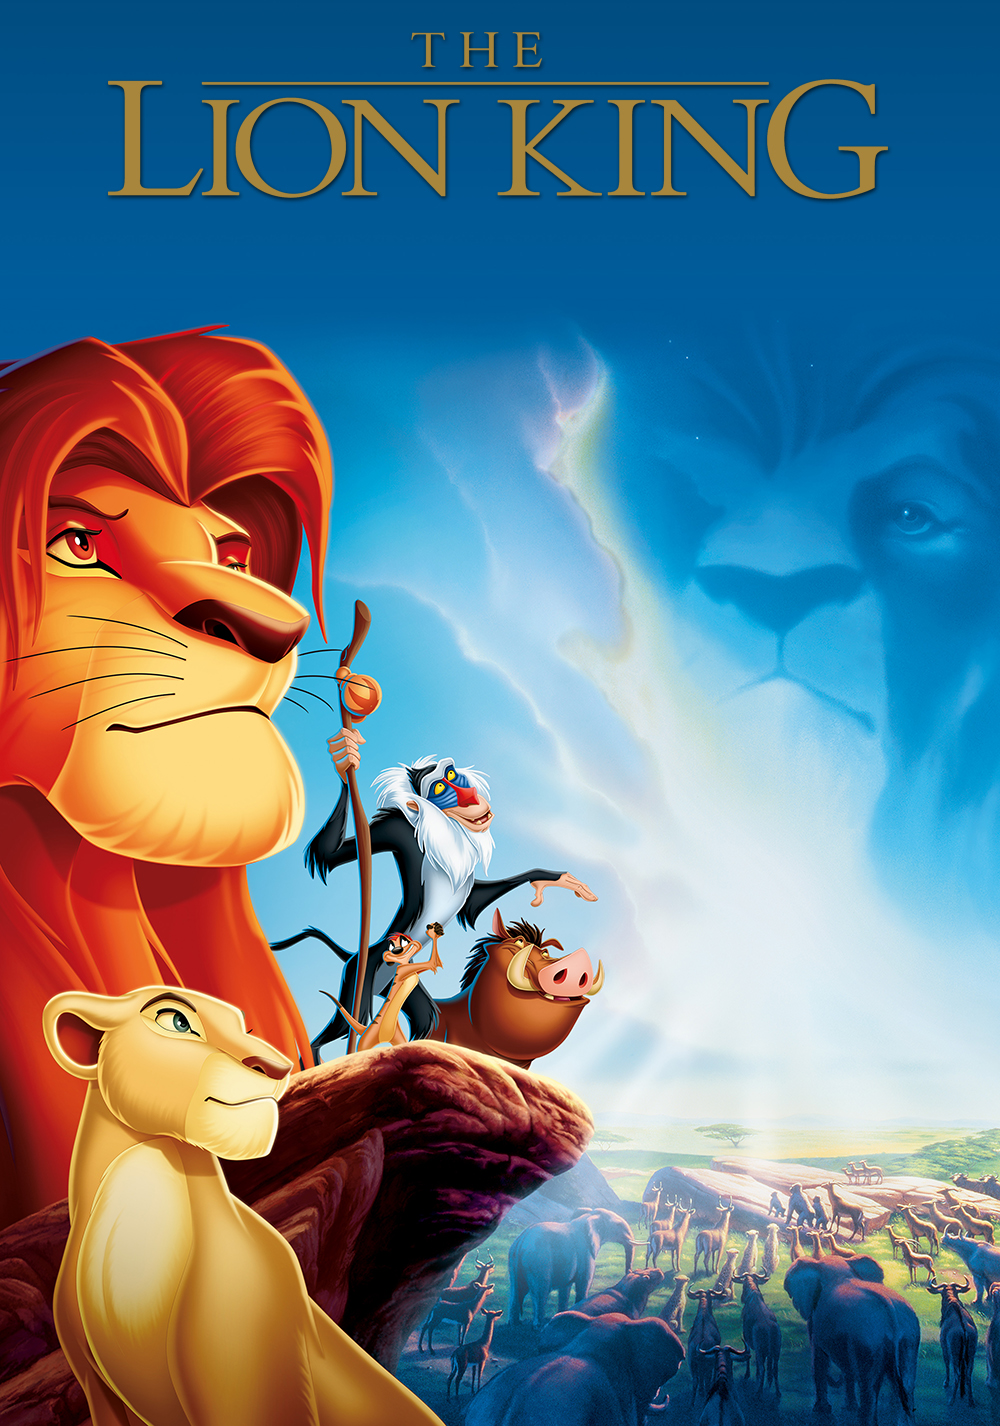 lion-king-1994-movie-poster